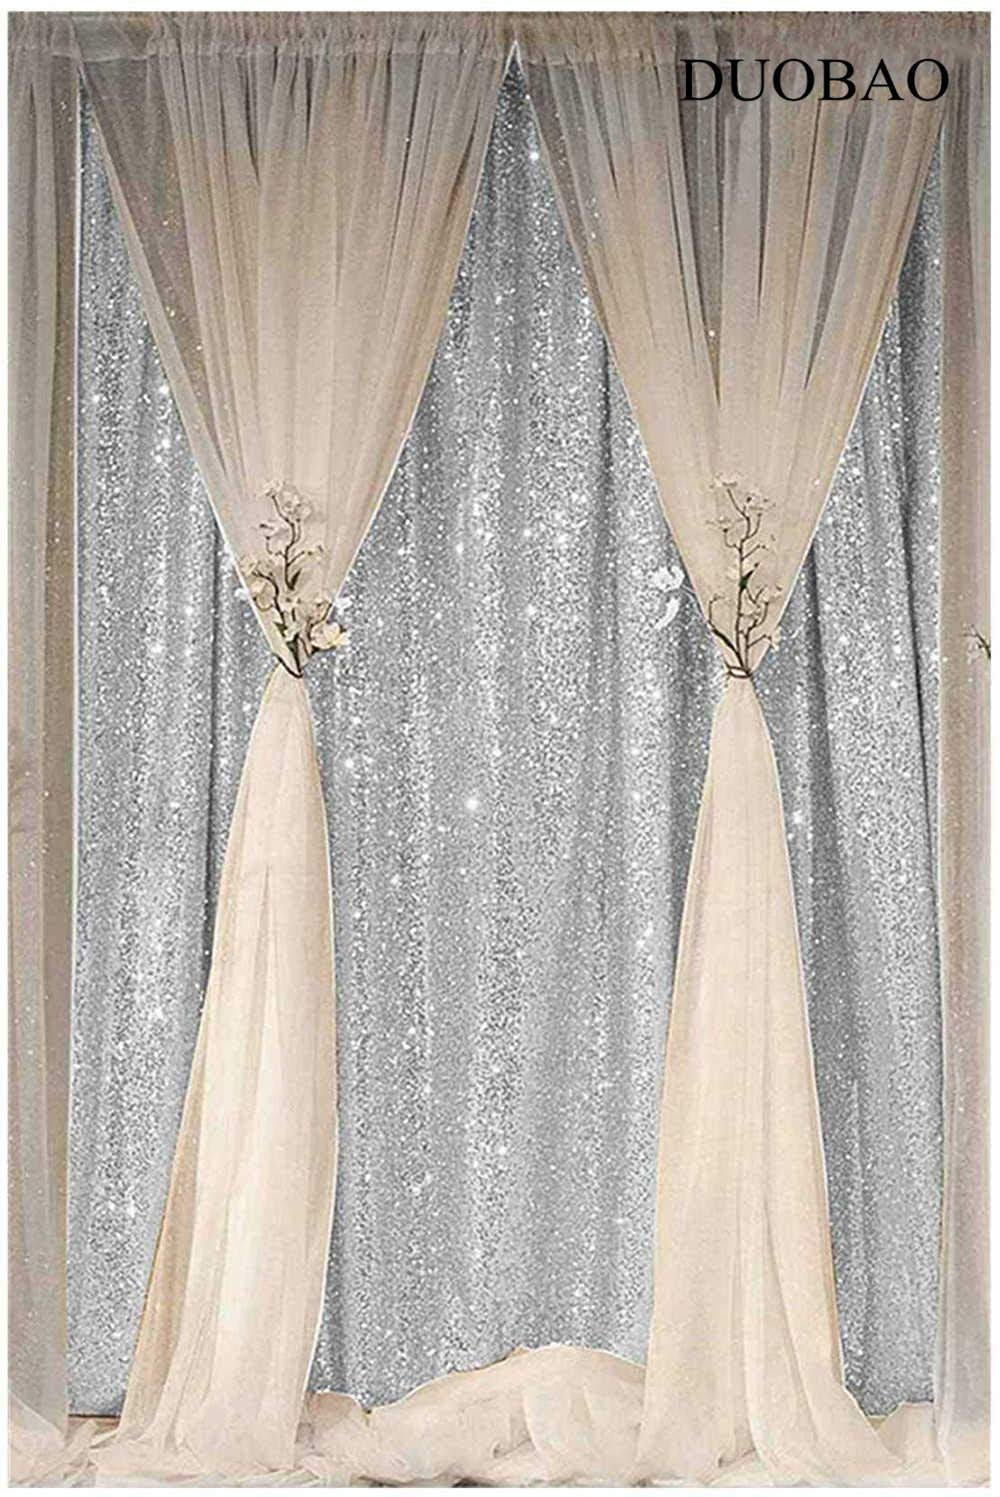 DUOBAO Sequin Backdrop Curtain 4FTx6FT Silver Glitter Background Silver Sequin Photo Backdrop Prom Party Decor~0613 by DUOBAO